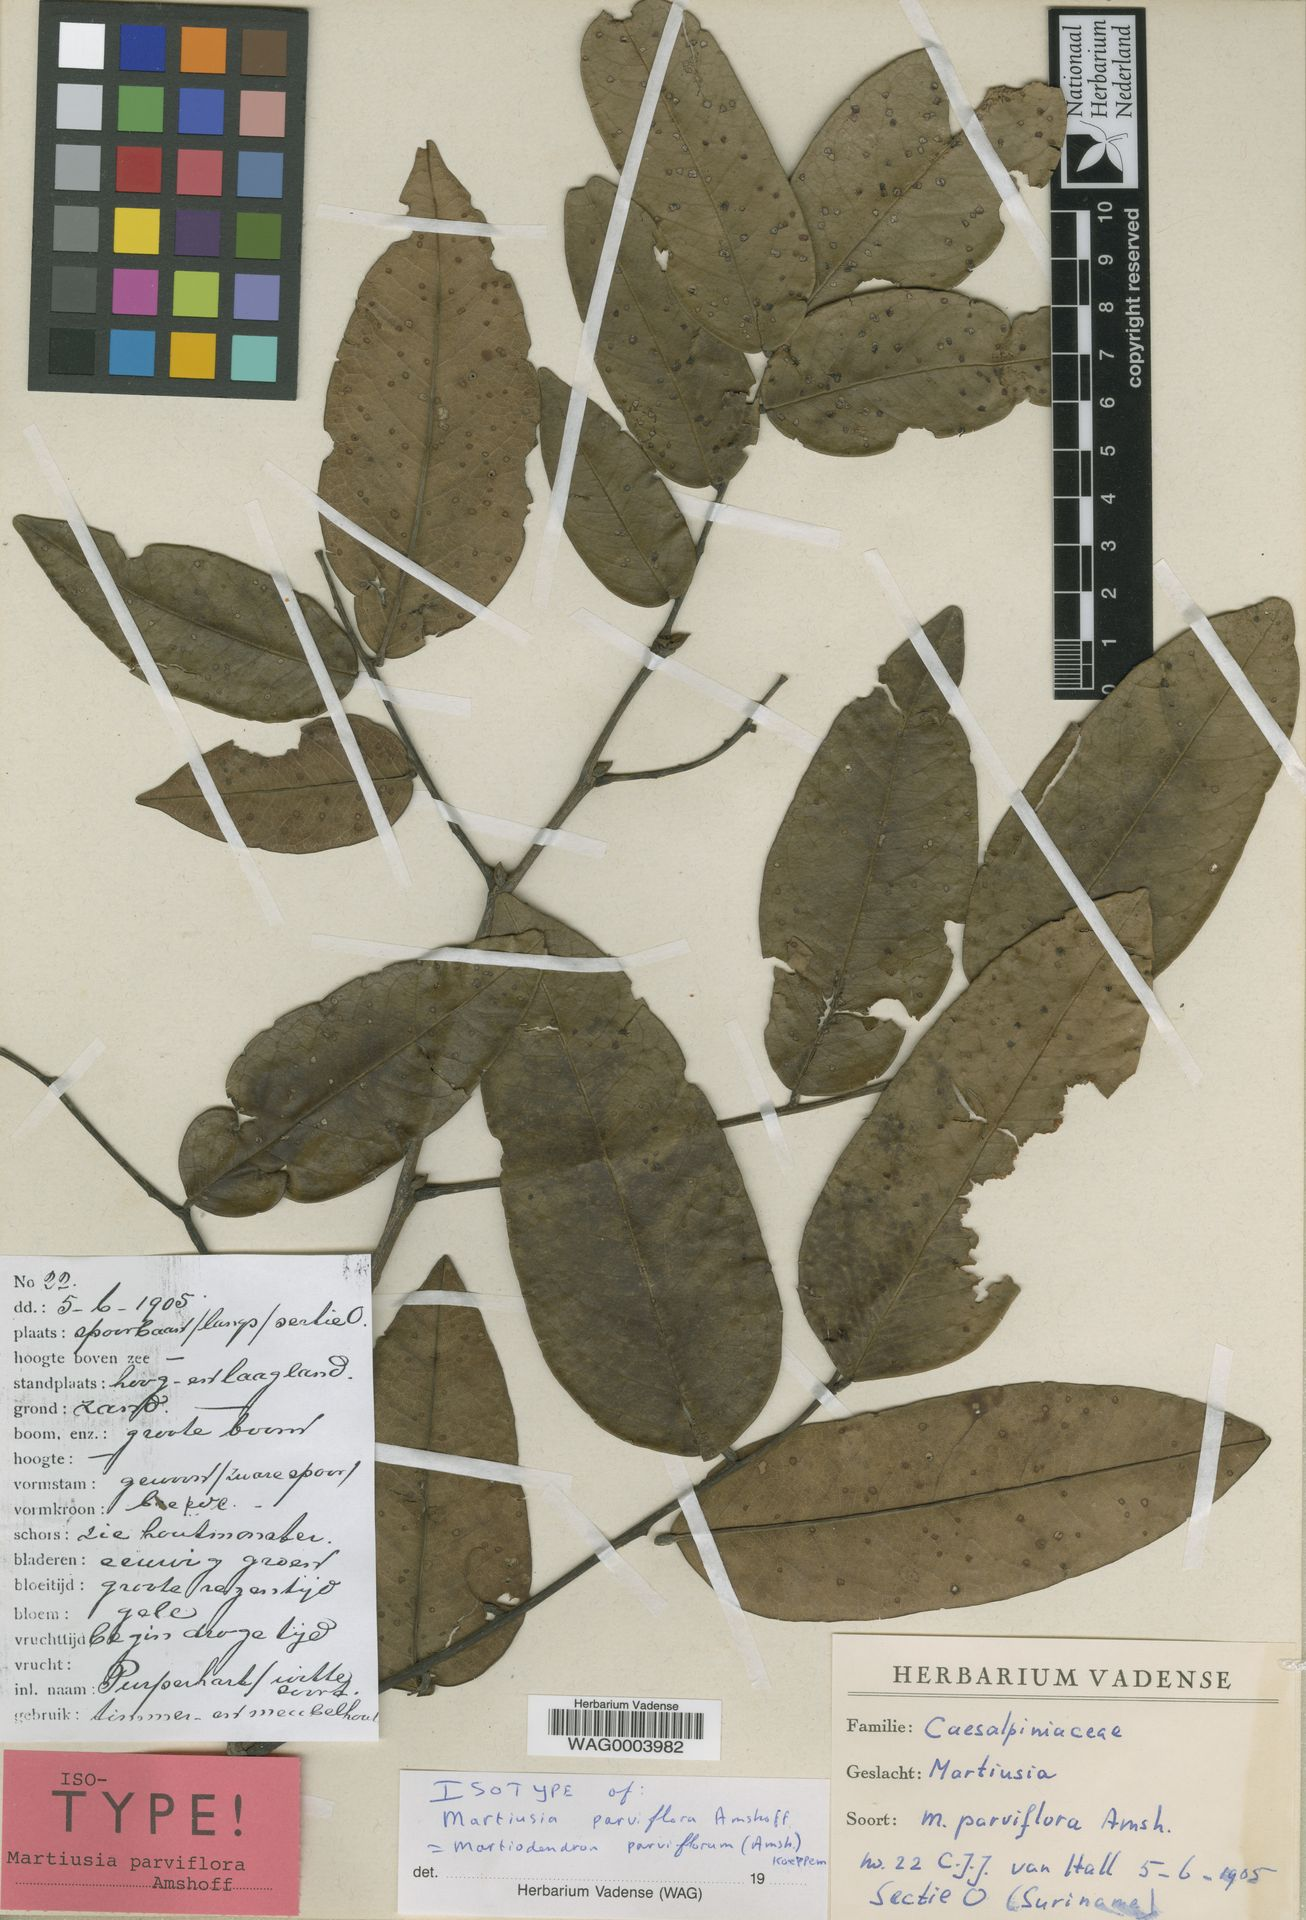 WAG0003982 | Martiodendron parviflorum (Amshoff) R.C.Koeppen